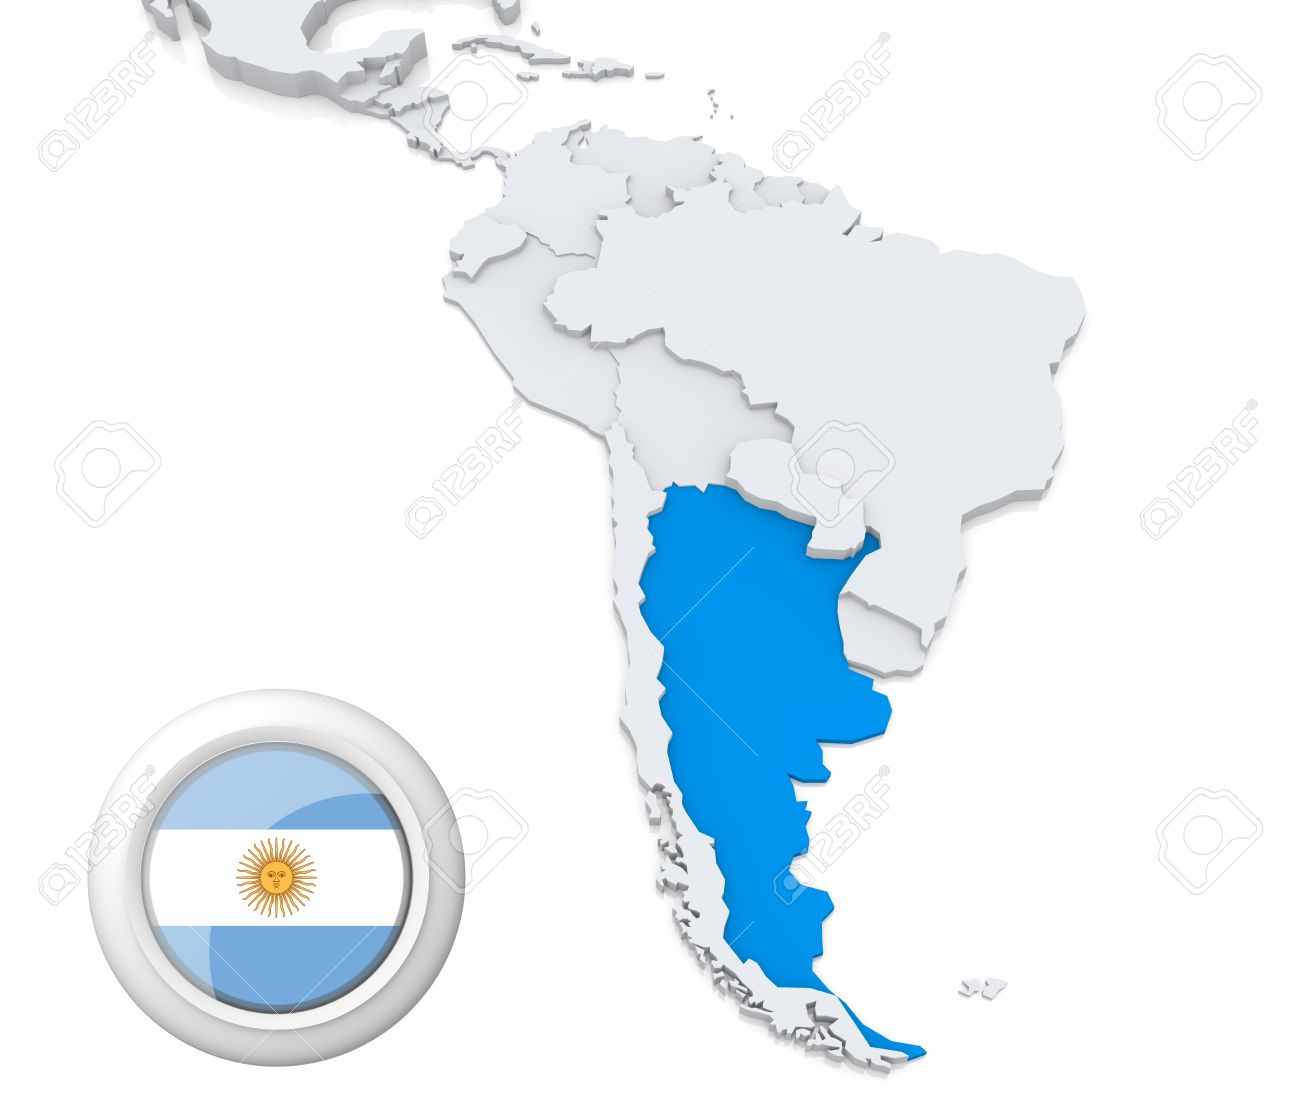 Highlighted Argentina On Map Of South America With National Flag